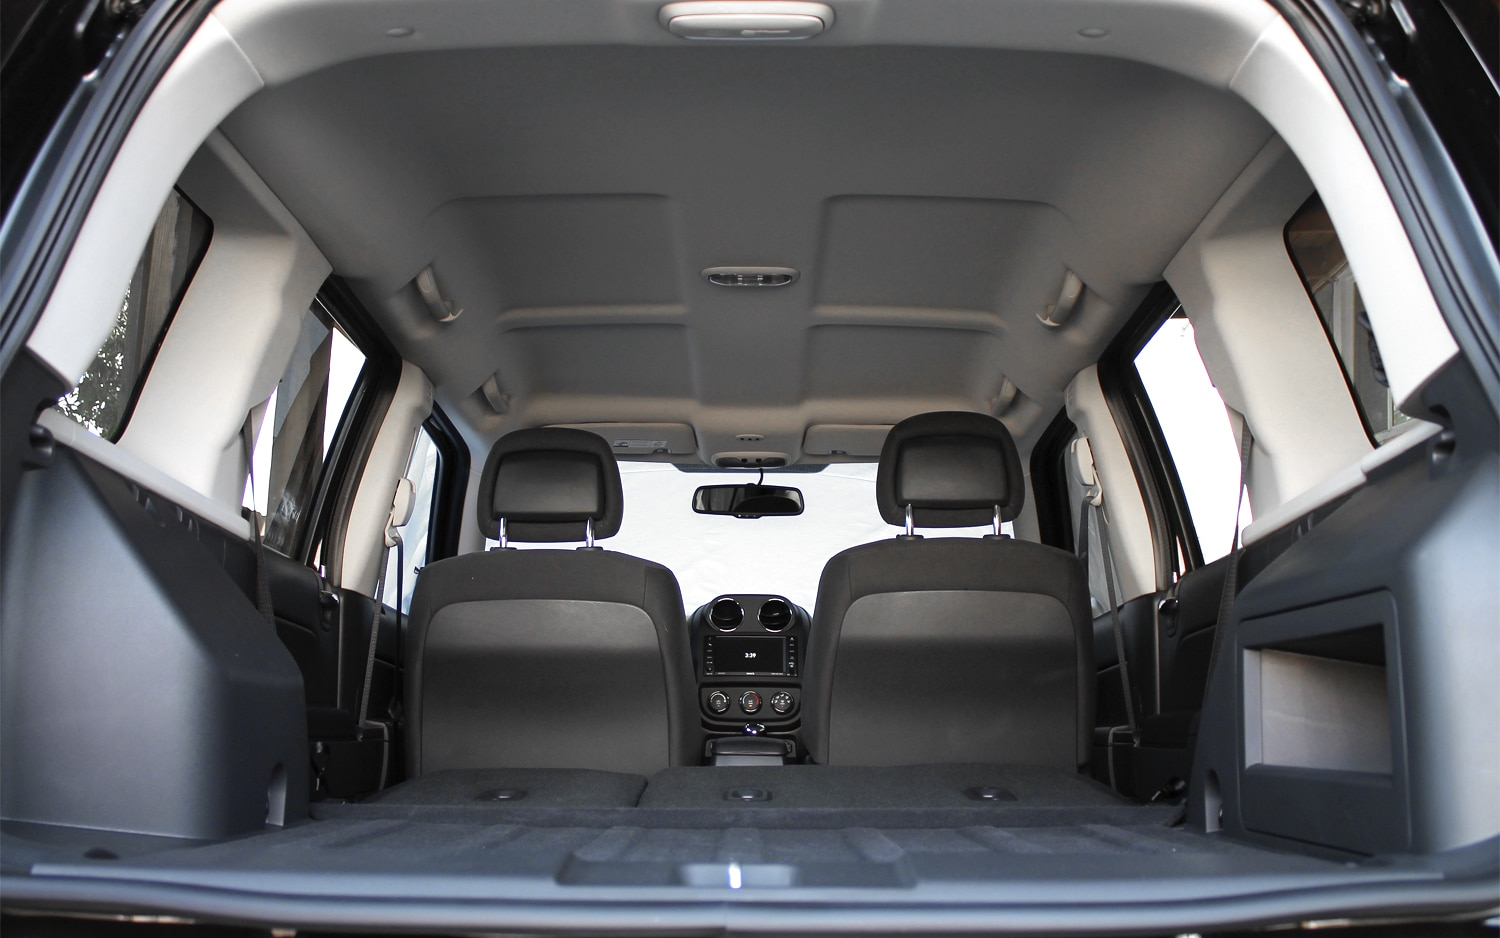 2013 Jeep Patriot Latitude 4X4 Rear Interior Cargo Space 04